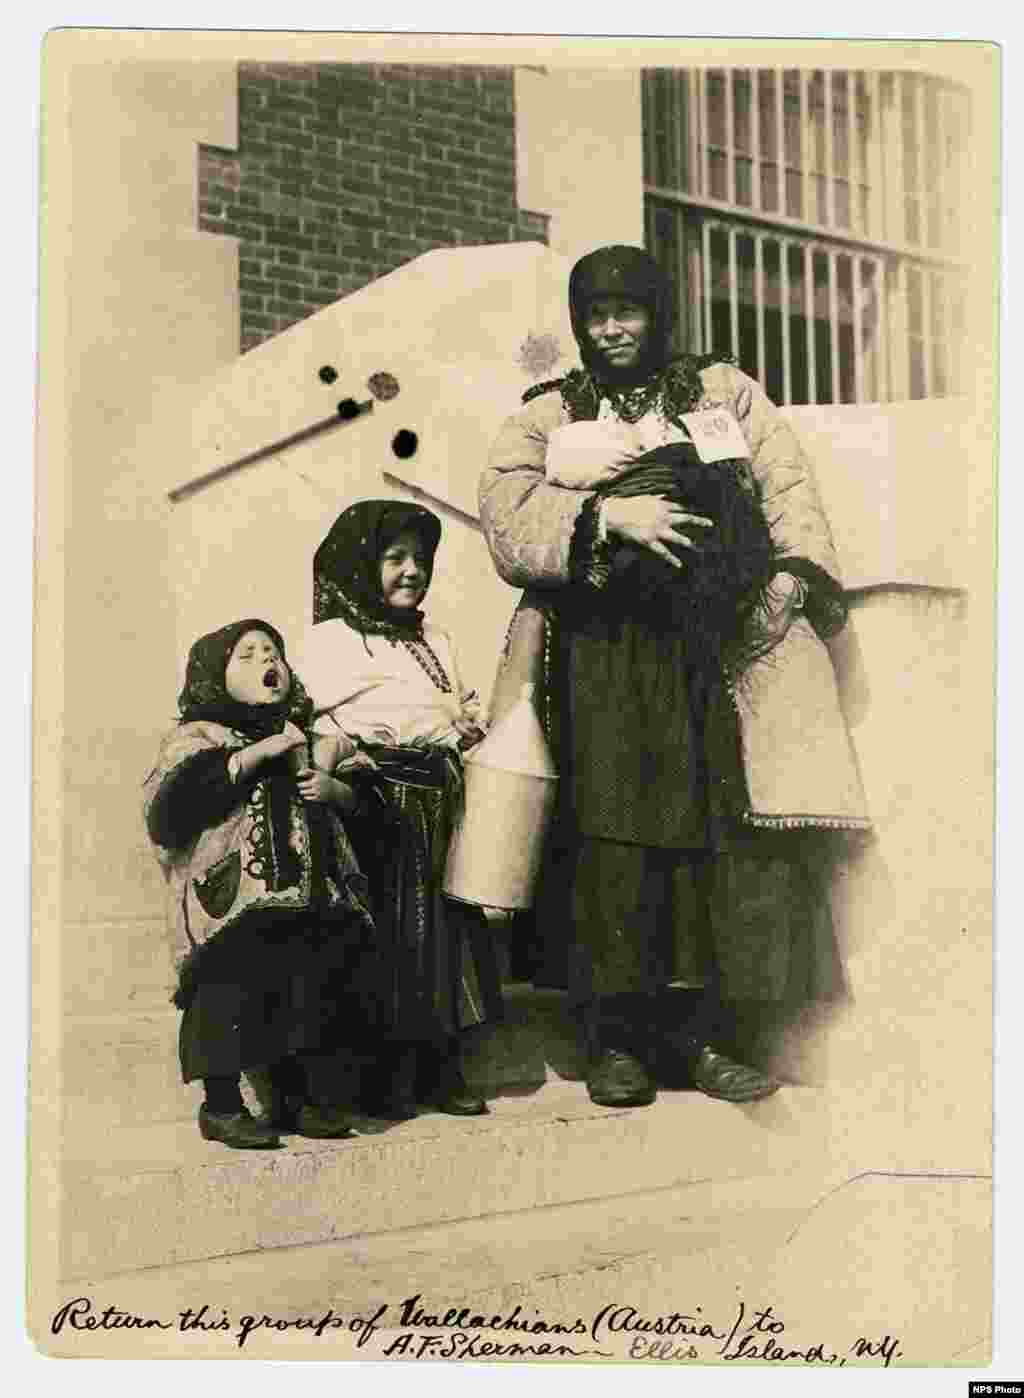 Wallachian woman with her three young children. Wallachia or Walachia, is a historical and geographical region of Romania north of the Danube and south of the Southern Carpathians. The handwritten note says Austria -- some of these areas were part of the Austro-Hungarian Empire prior to World War I.